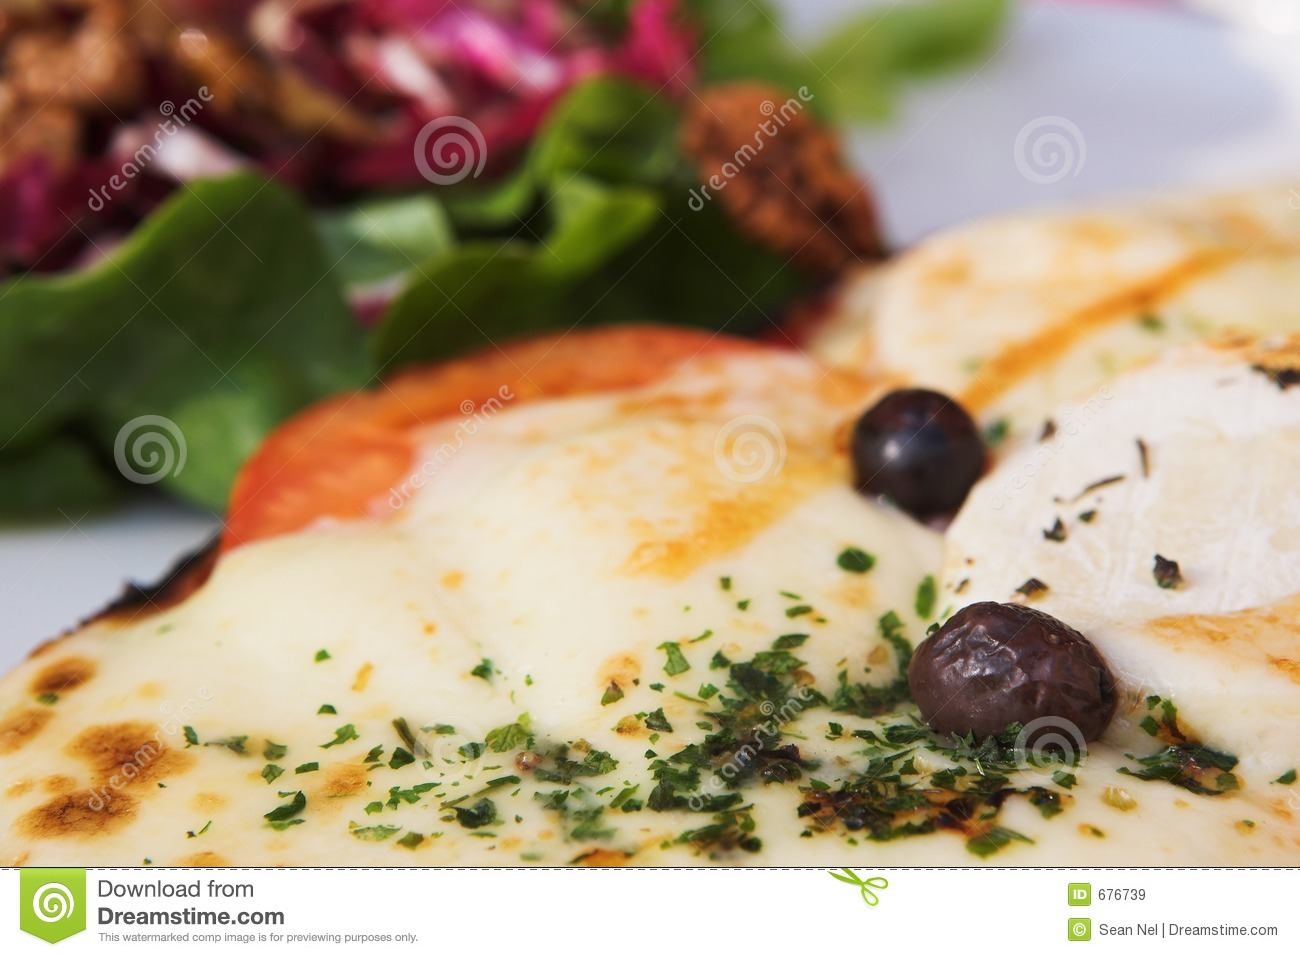 Download Antibes #166 stock image. Image of melted, salad, tomato - 676739